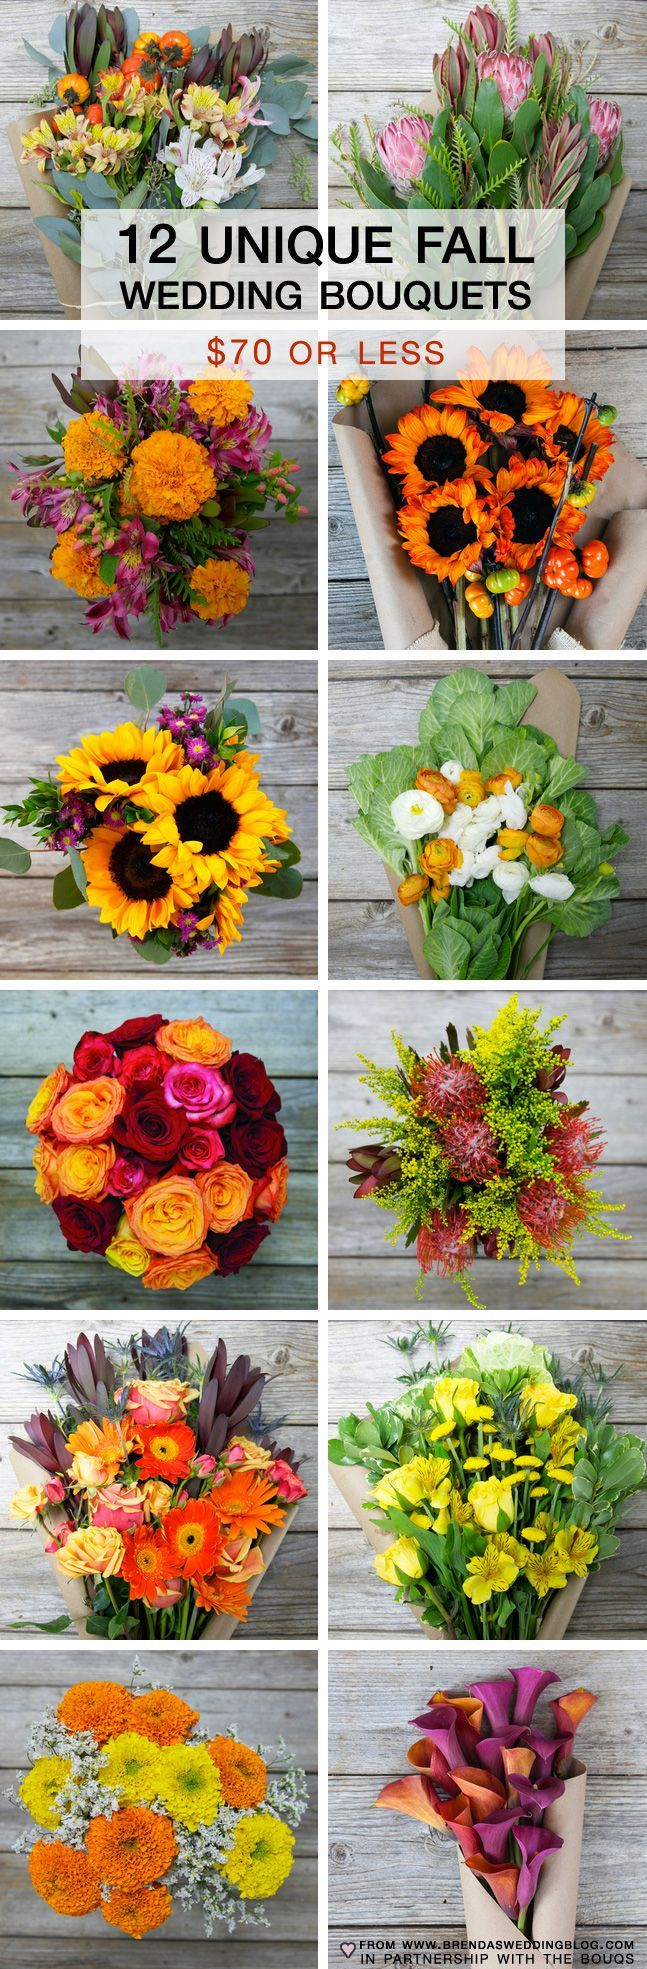 Best 25 fall wedding flowers ideas on pinterest fall wedding 12 unique fall wedding bouquets priced between 40 70 junglespirit